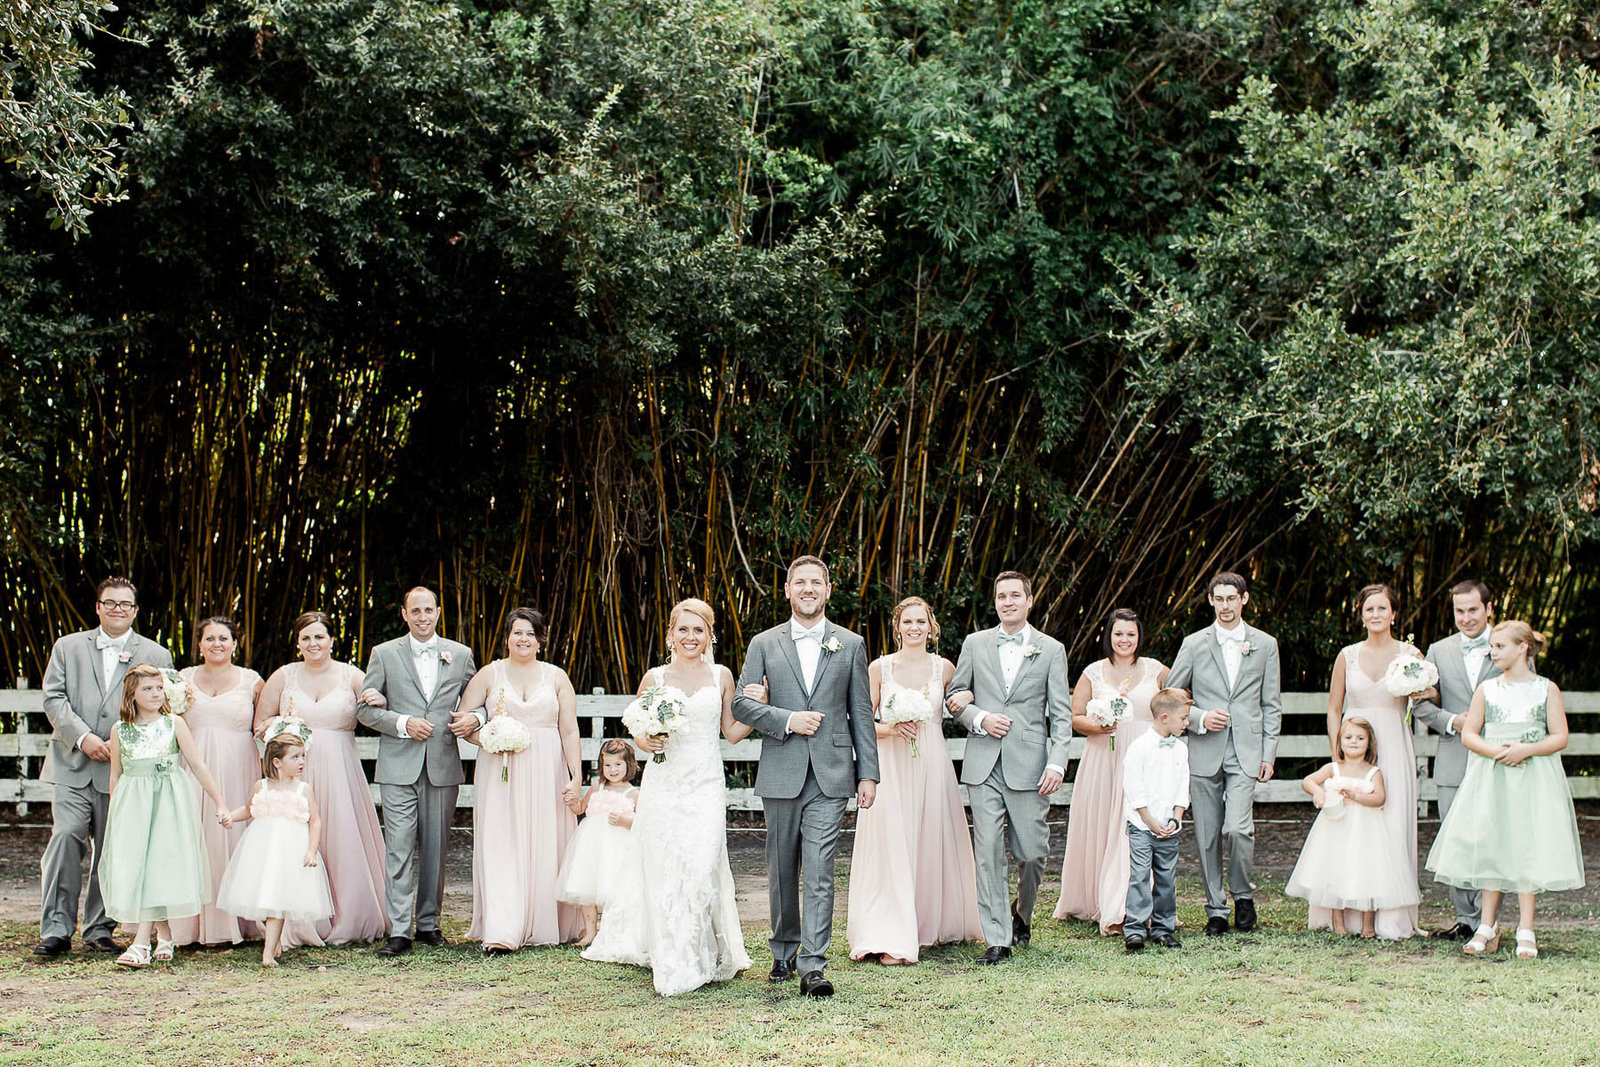 Wedding party lines up next to a picket fence, Alhambra Hall Charleston Wedding Photography.